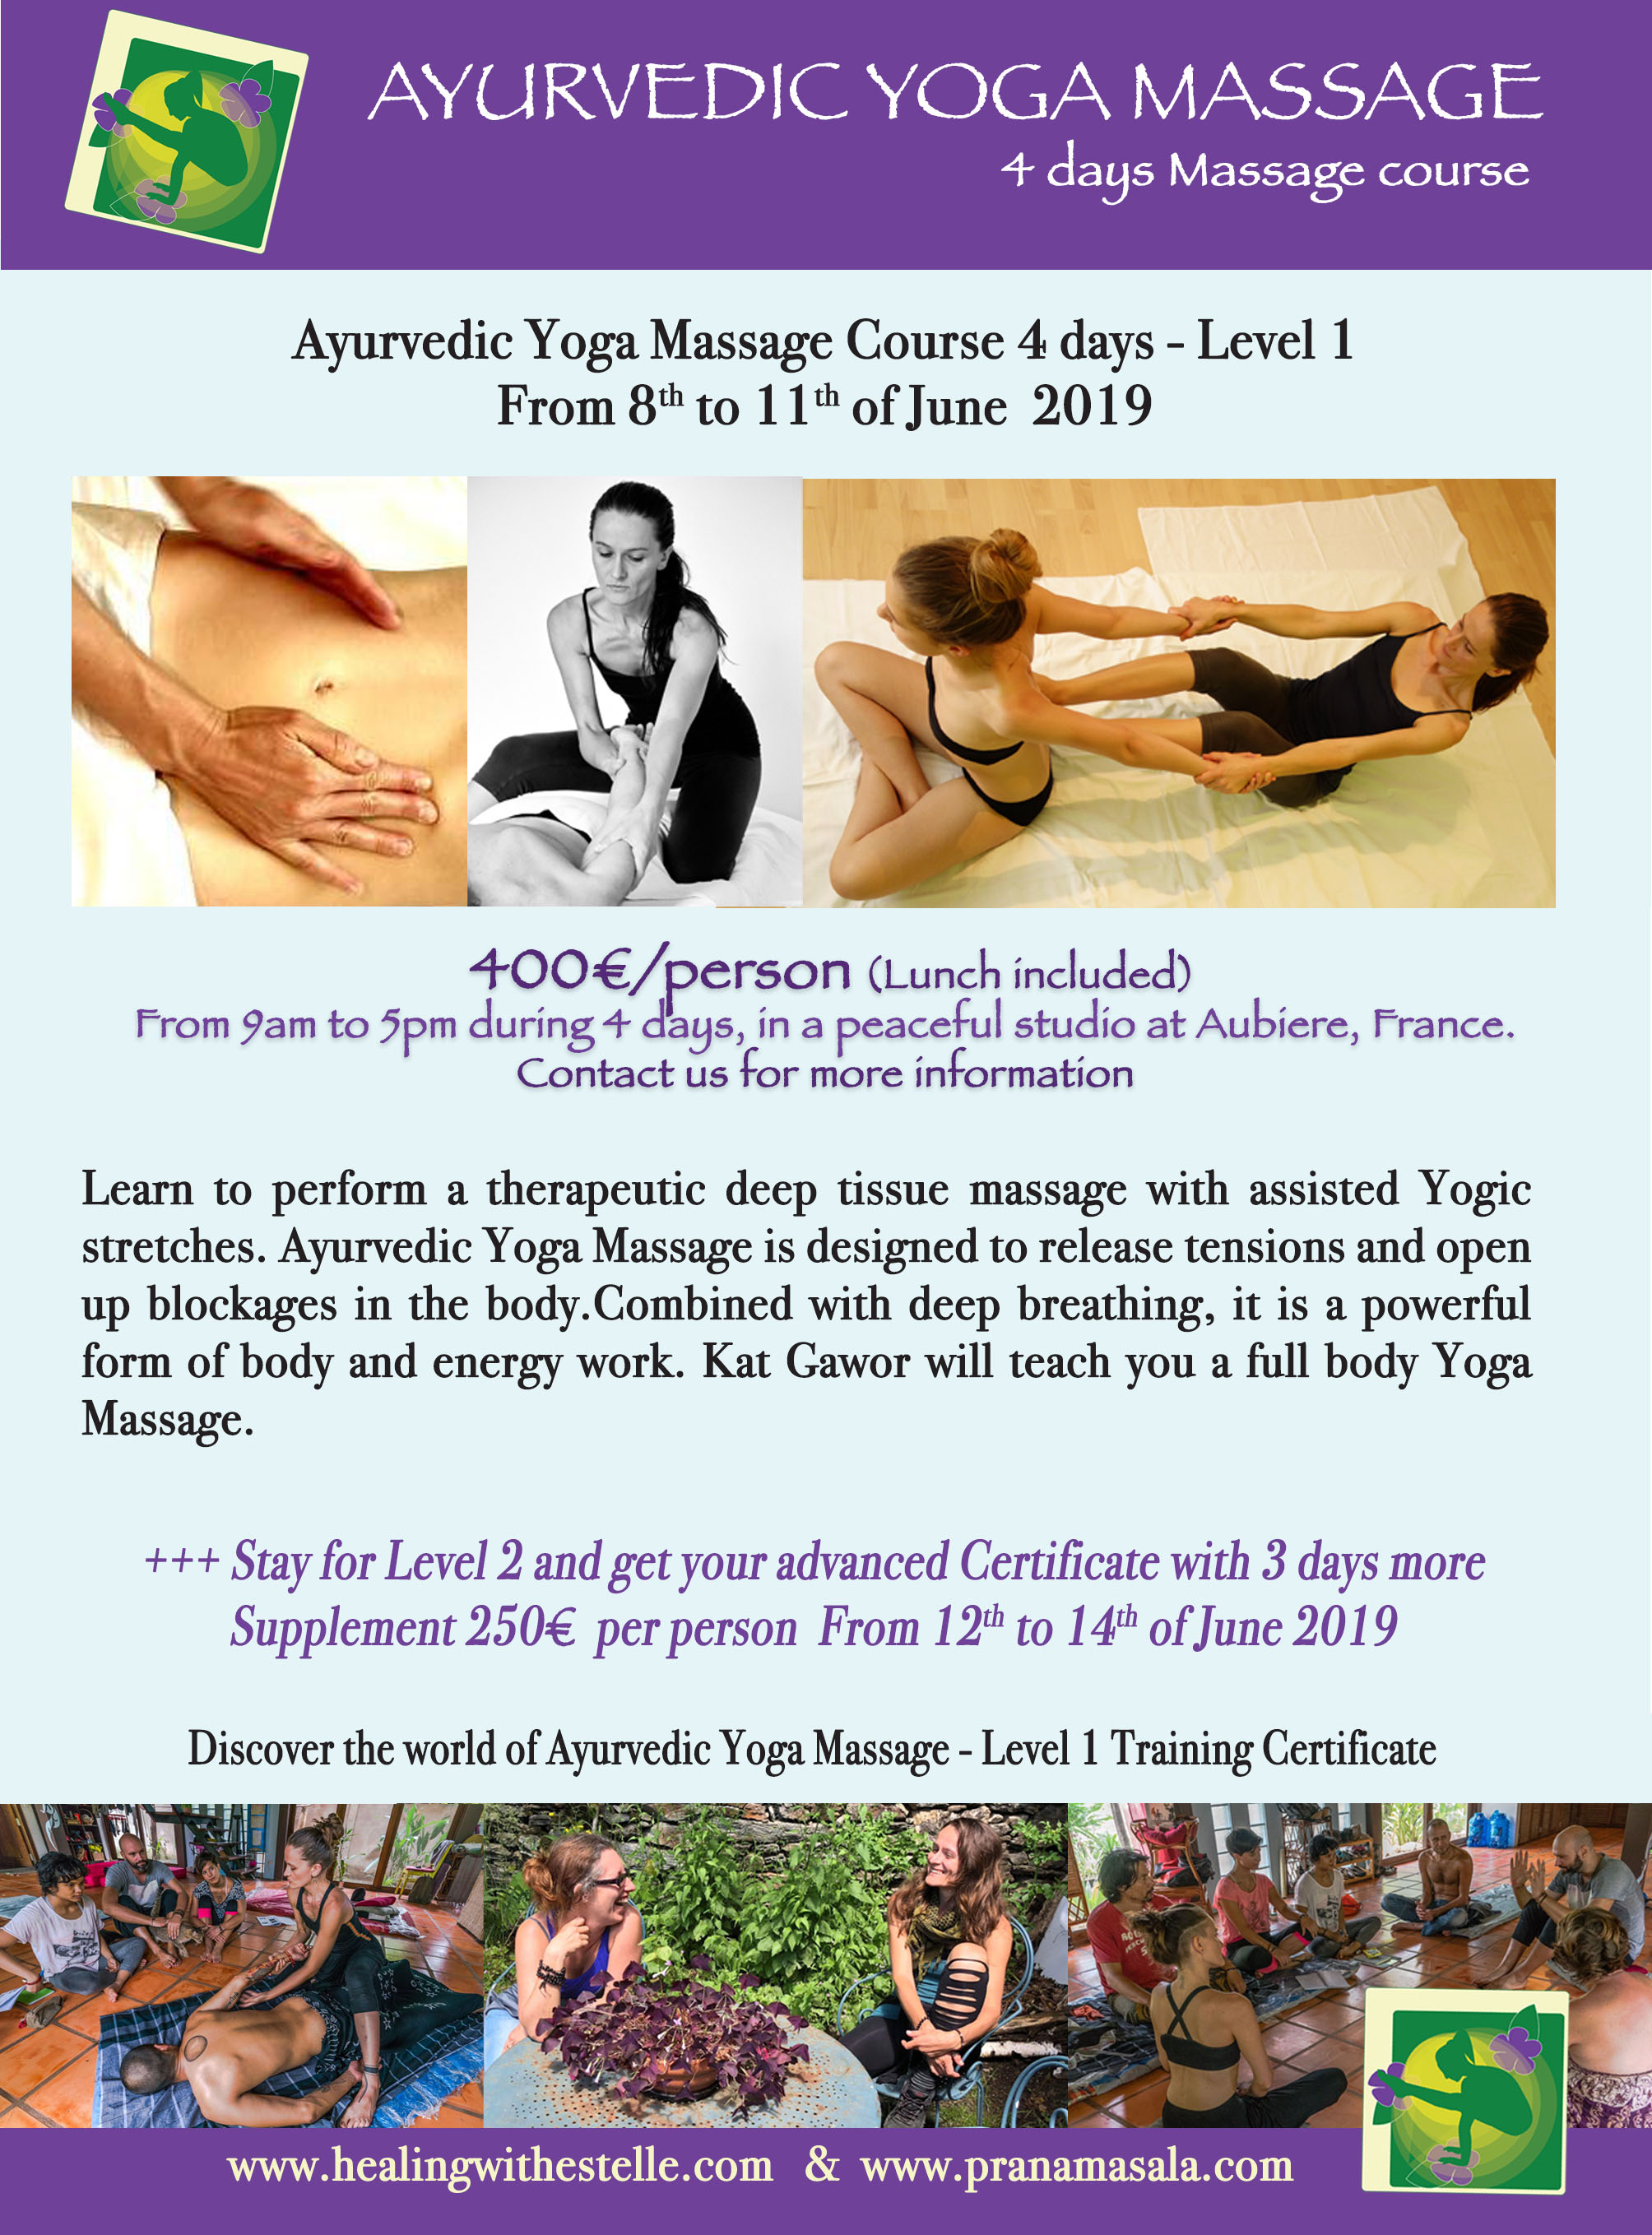 Ayurvedic massage courses eng-1